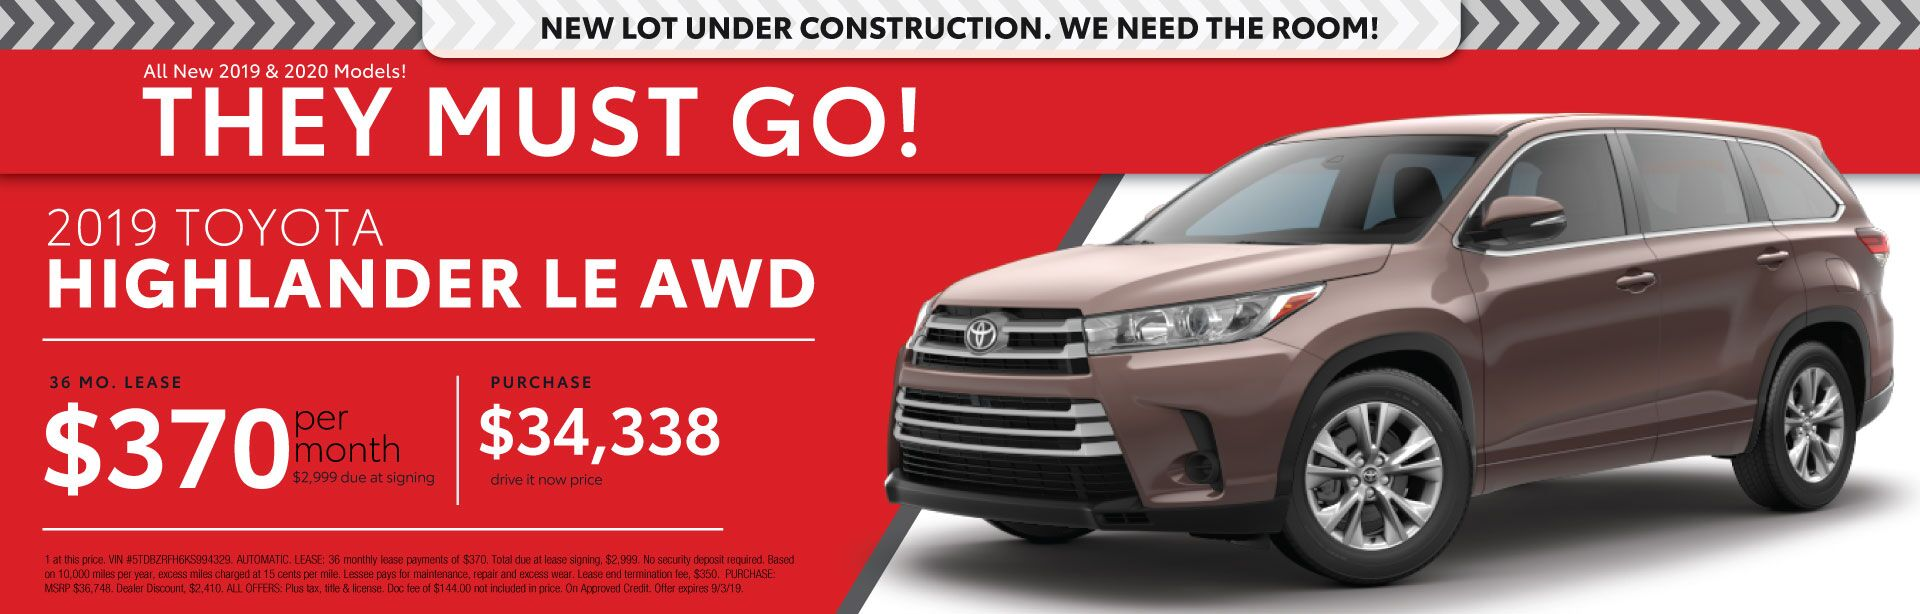 2019 Highlander LE - Lease for $370 per month for 36 months with $2,999 due at signing - Purchase price $34,338